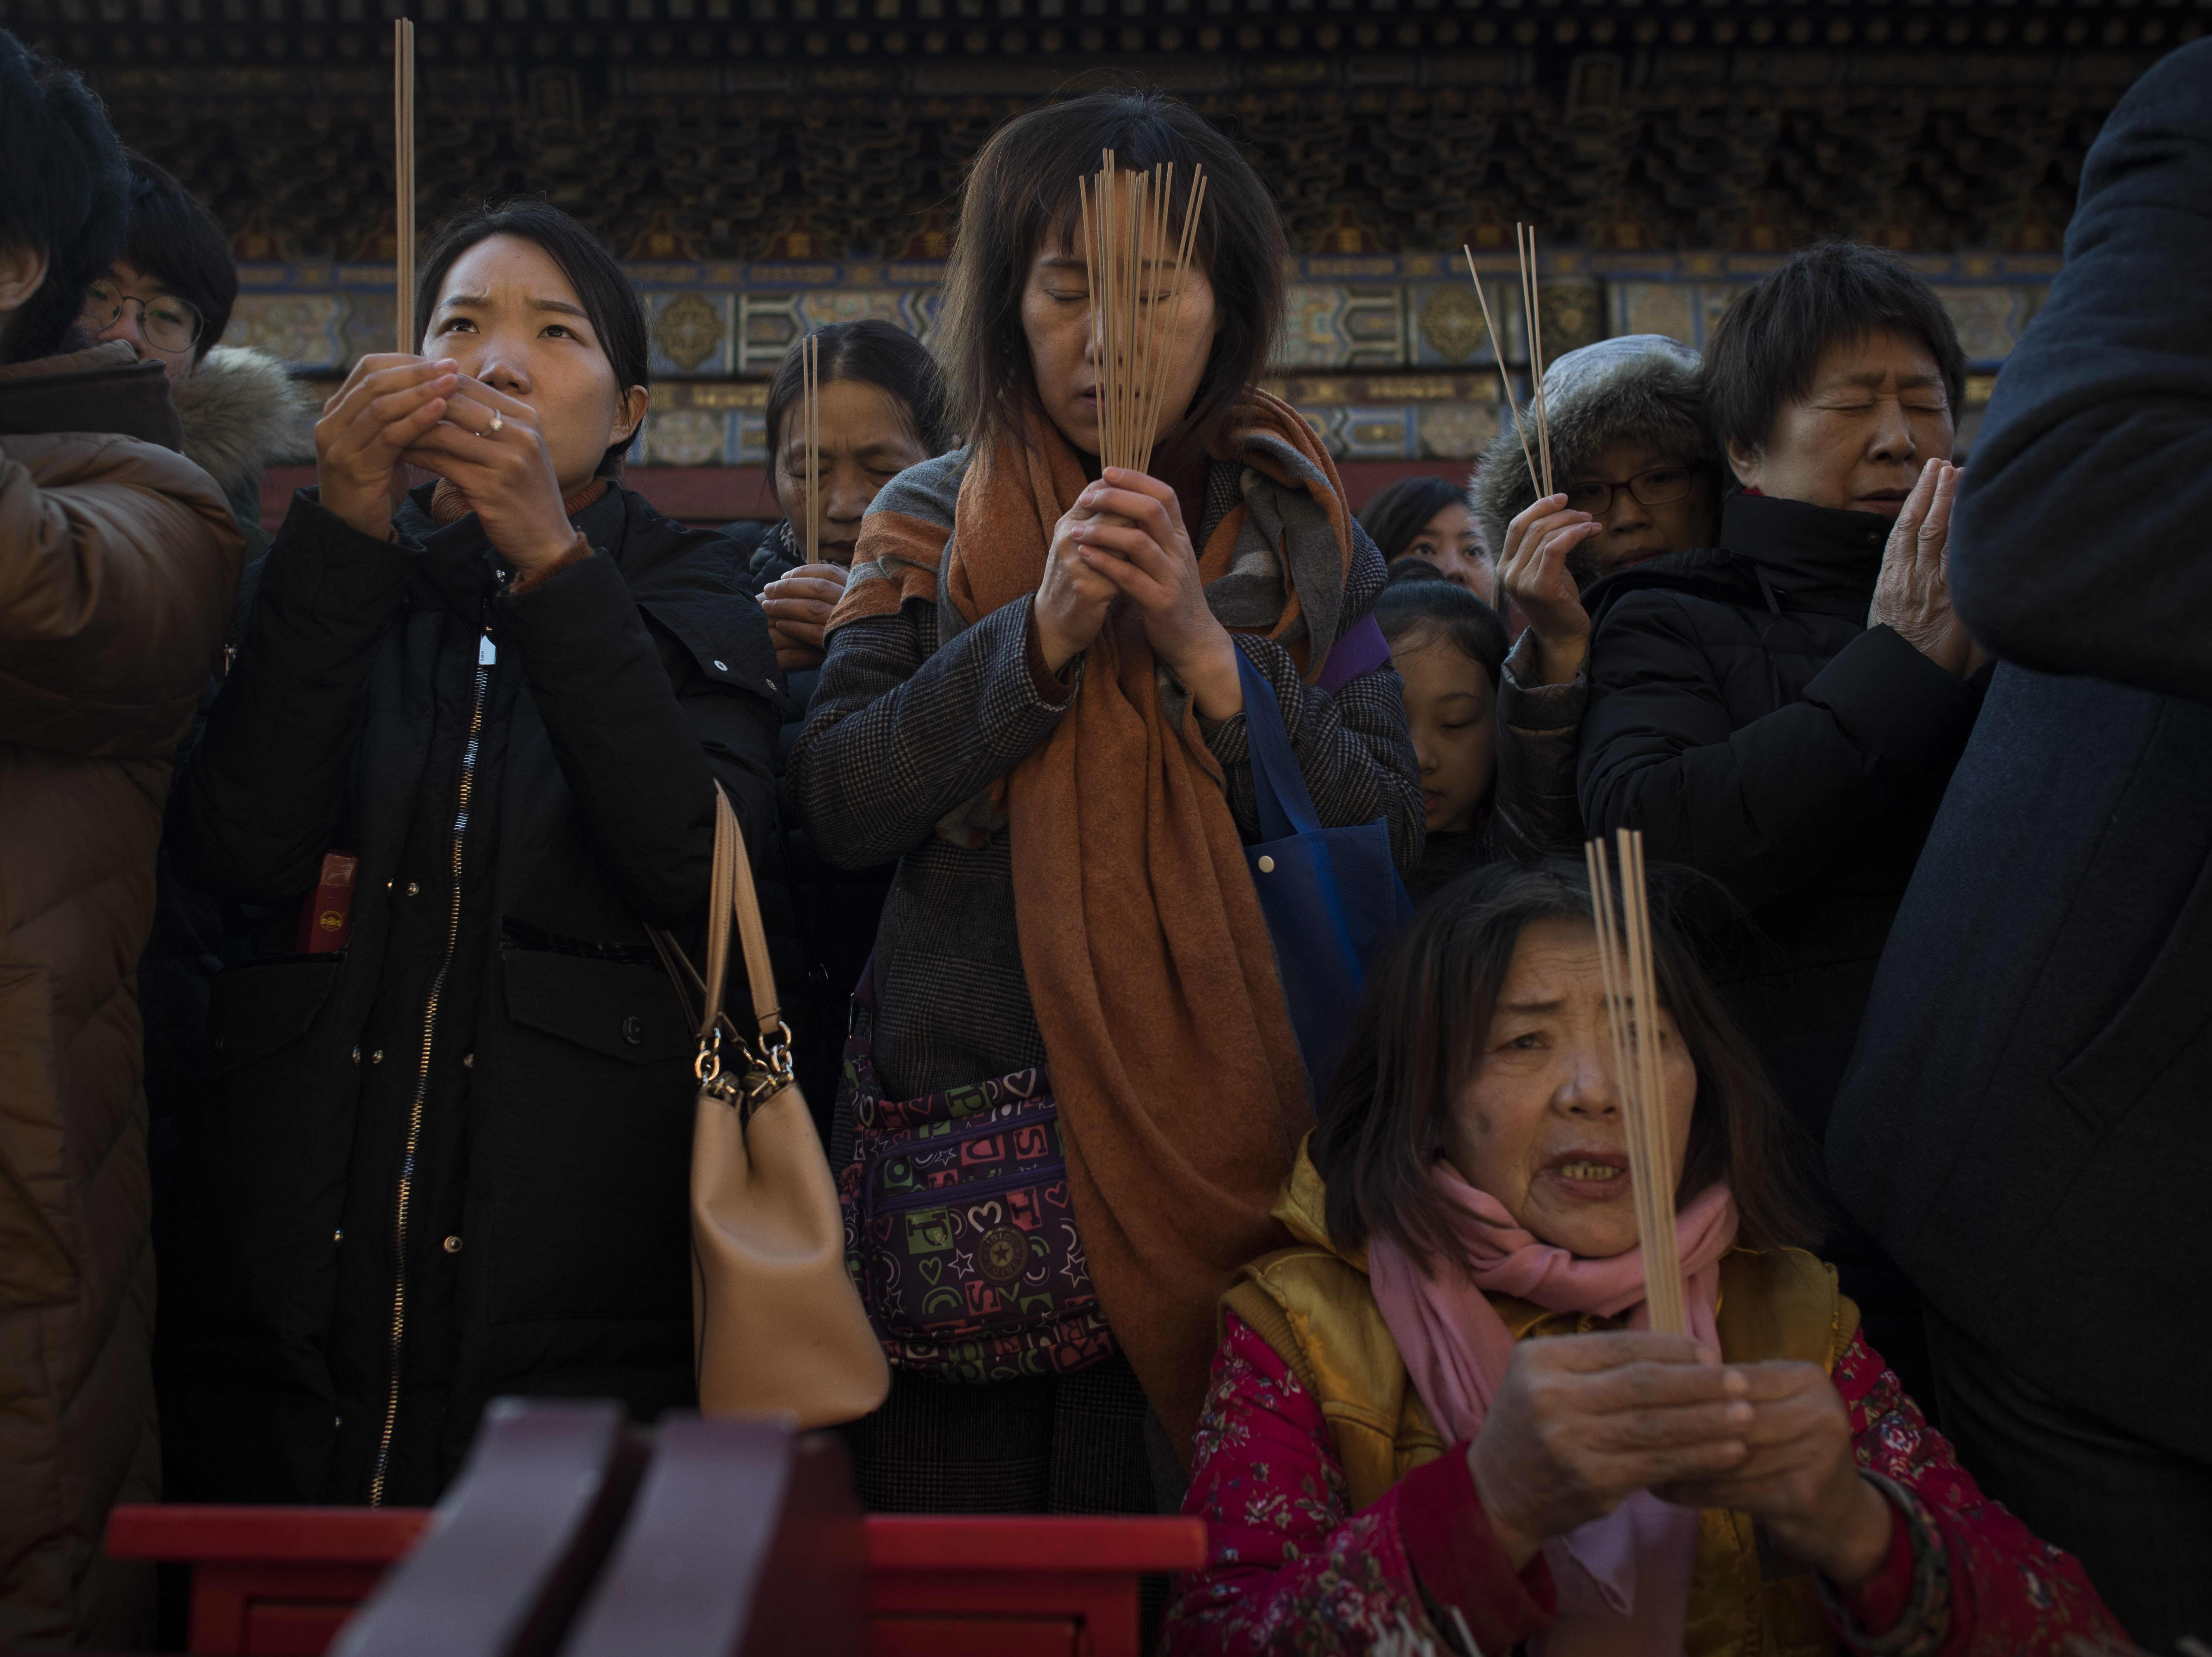 Feb. 16, 2018: People pray to celebrate the Lunar New Year, marking the Year of the Dog, at the Lama temple in Beijing.